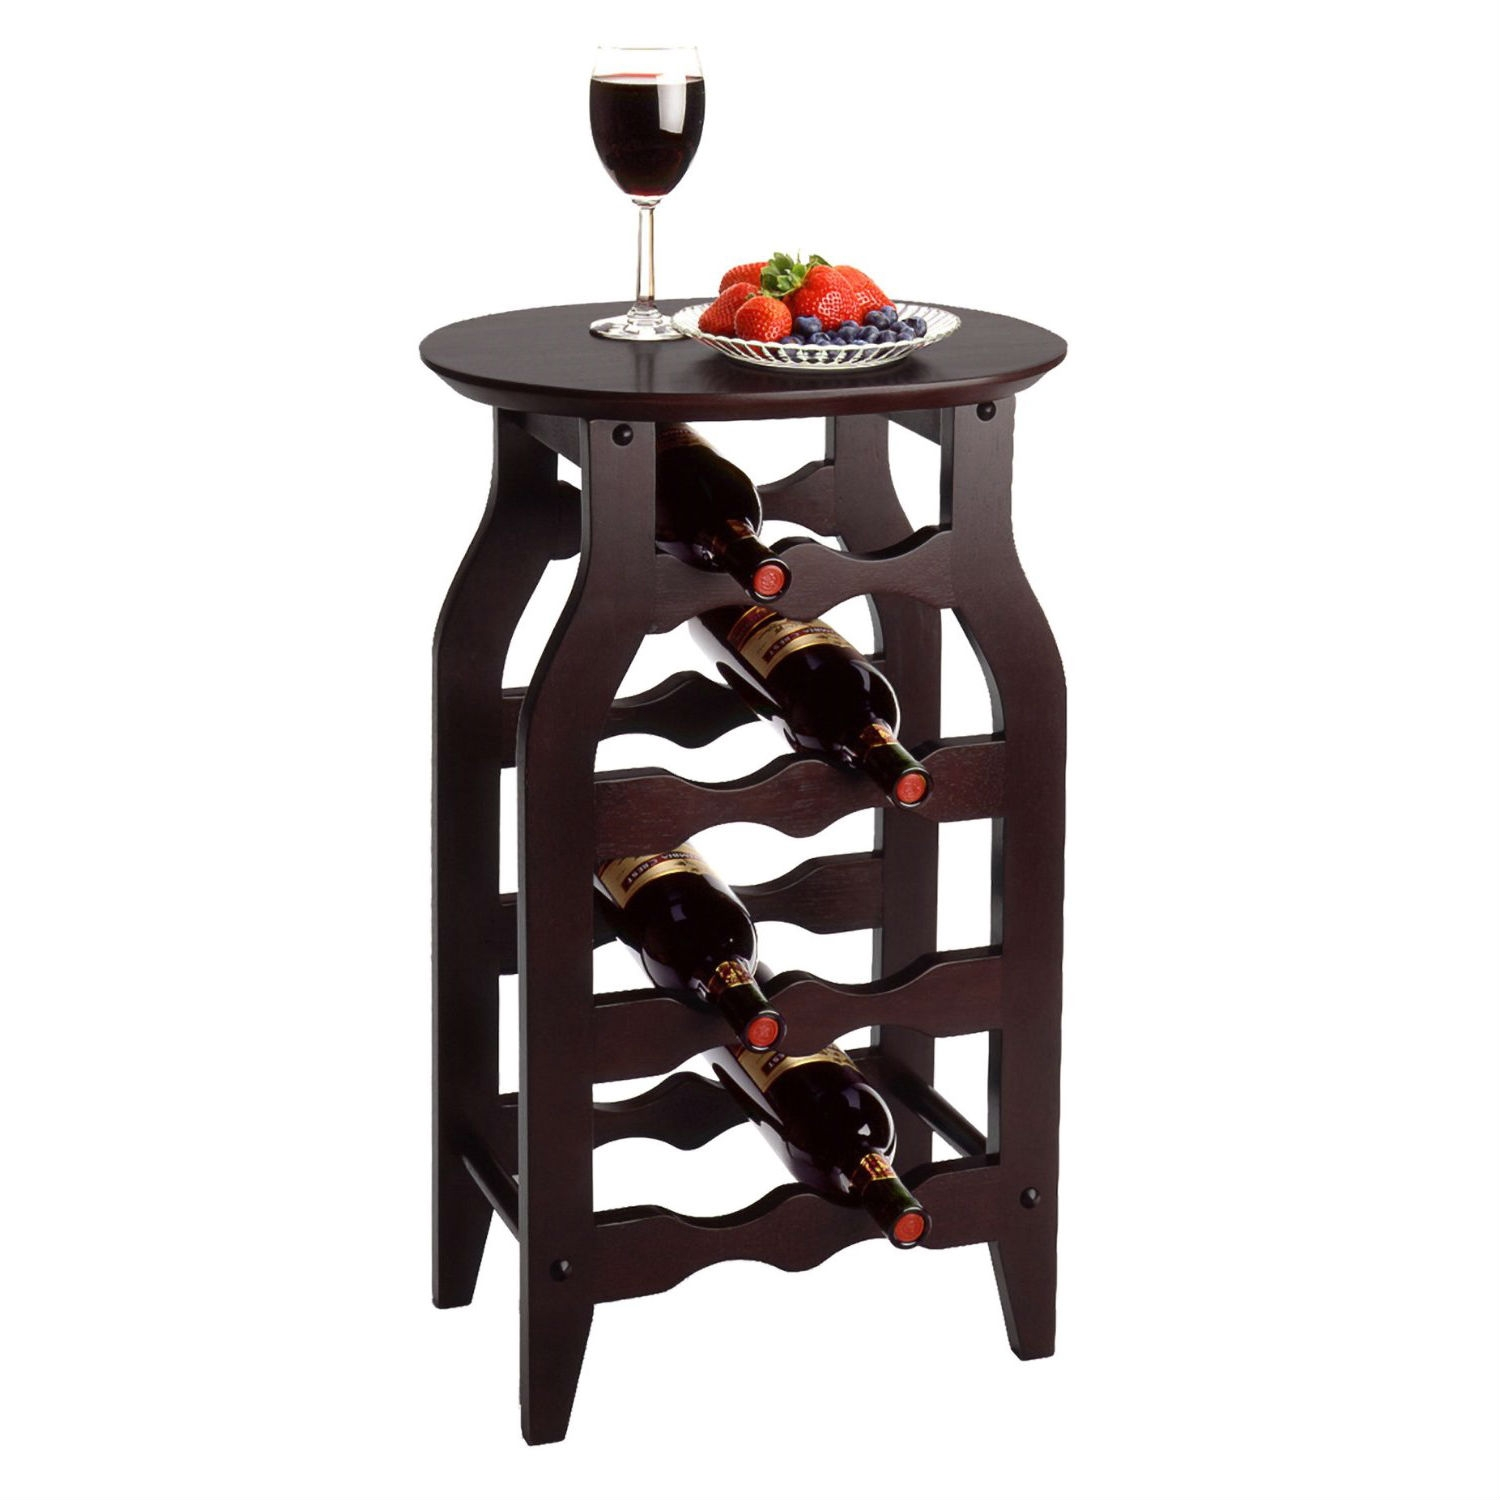 This 8-Bottle Oval Wine Rack Side Table in Espresso is perfect for use in any room.Espresso finish combine with solid wood to bring function and style together in this small wine rack.